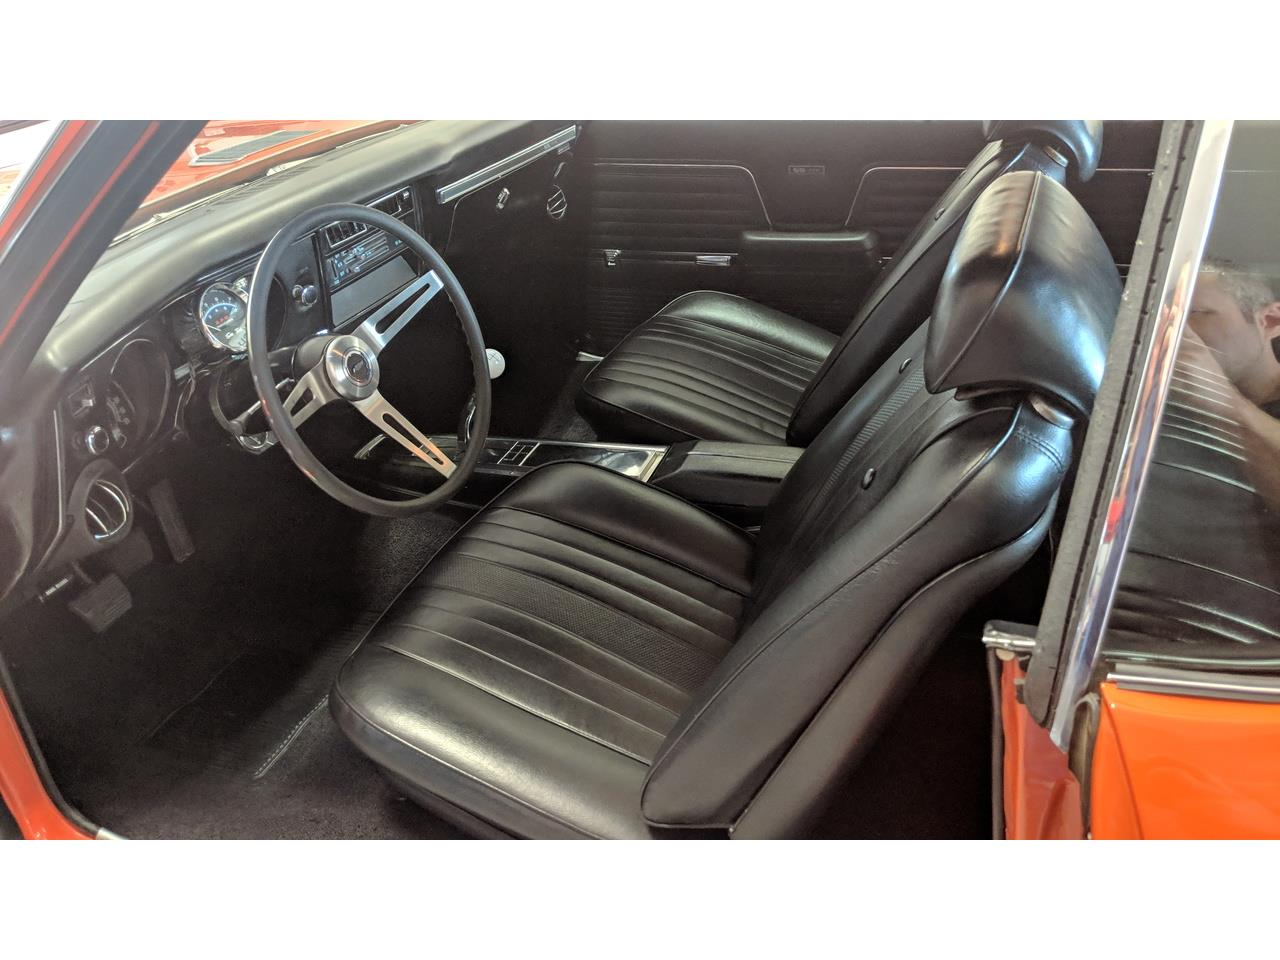 Large Picture of 1969 Chevrolet Chevelle SS - $54,000.00 Offered by a Private Seller - PEBN